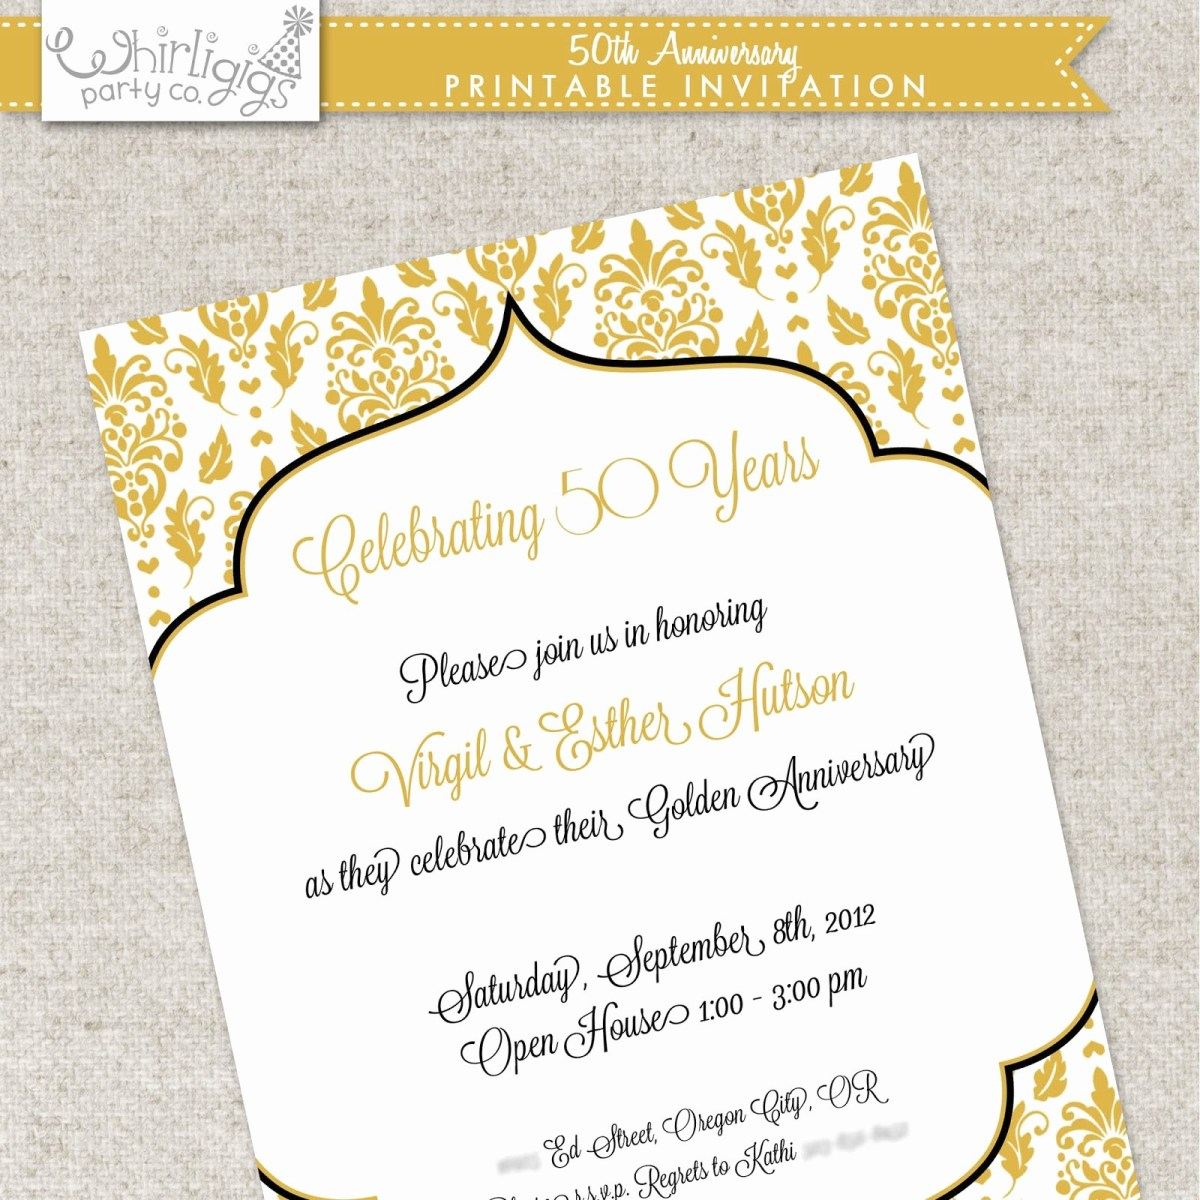 50Th Wedding Invitations 60th Wedding Anniversary Invitations Free Invitation Templates